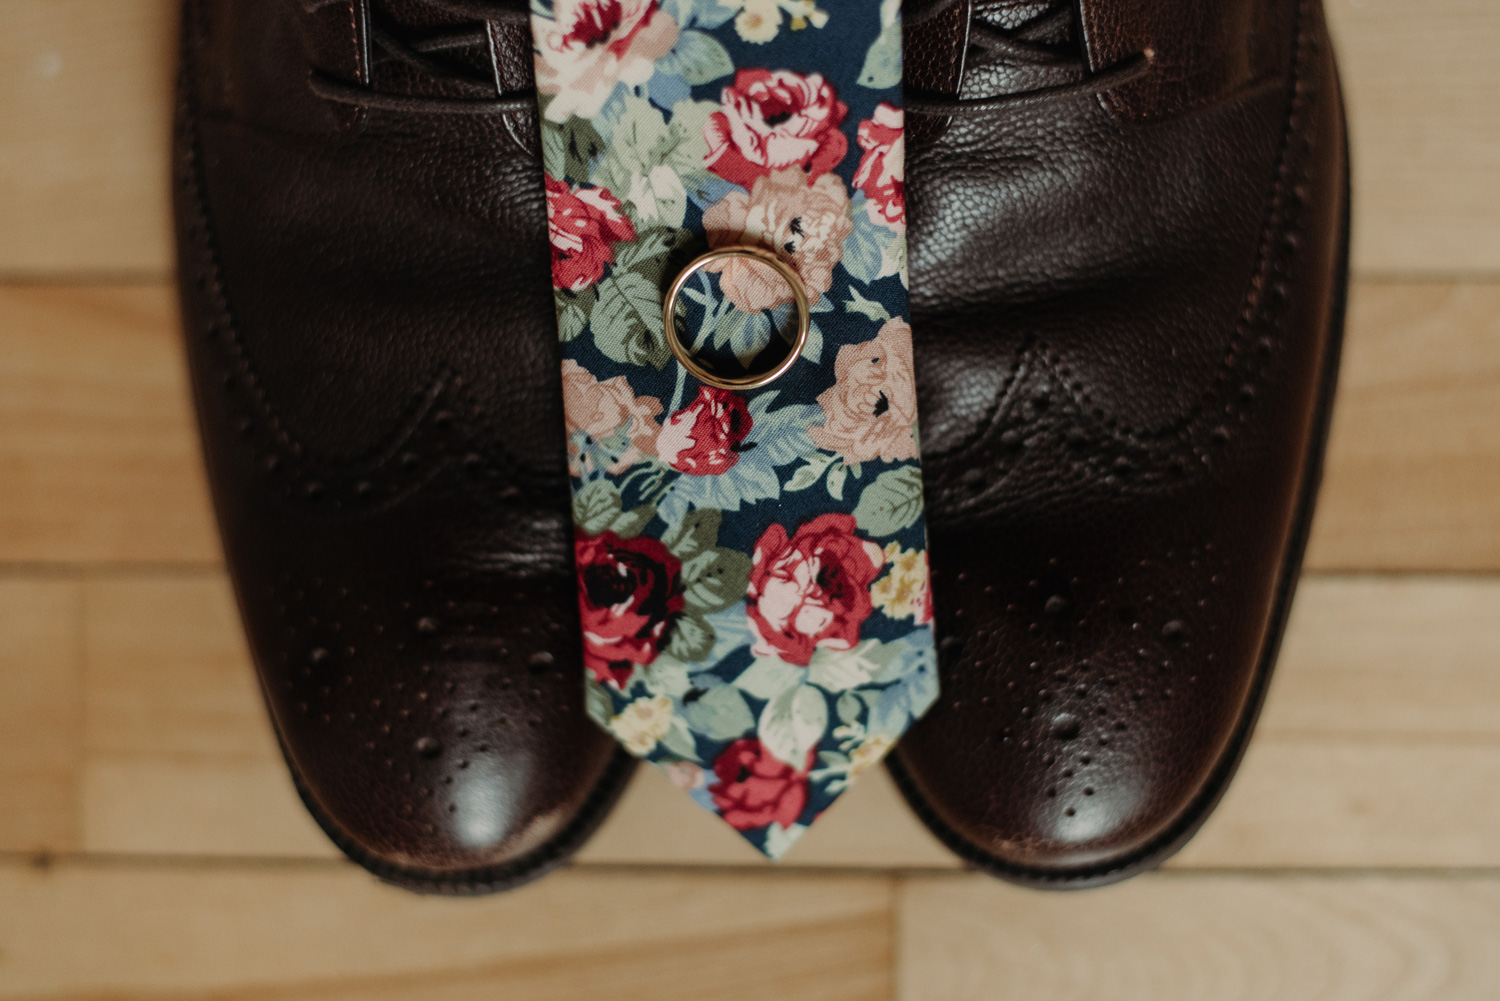 brown groom's shoes with floral tie and wedding ring